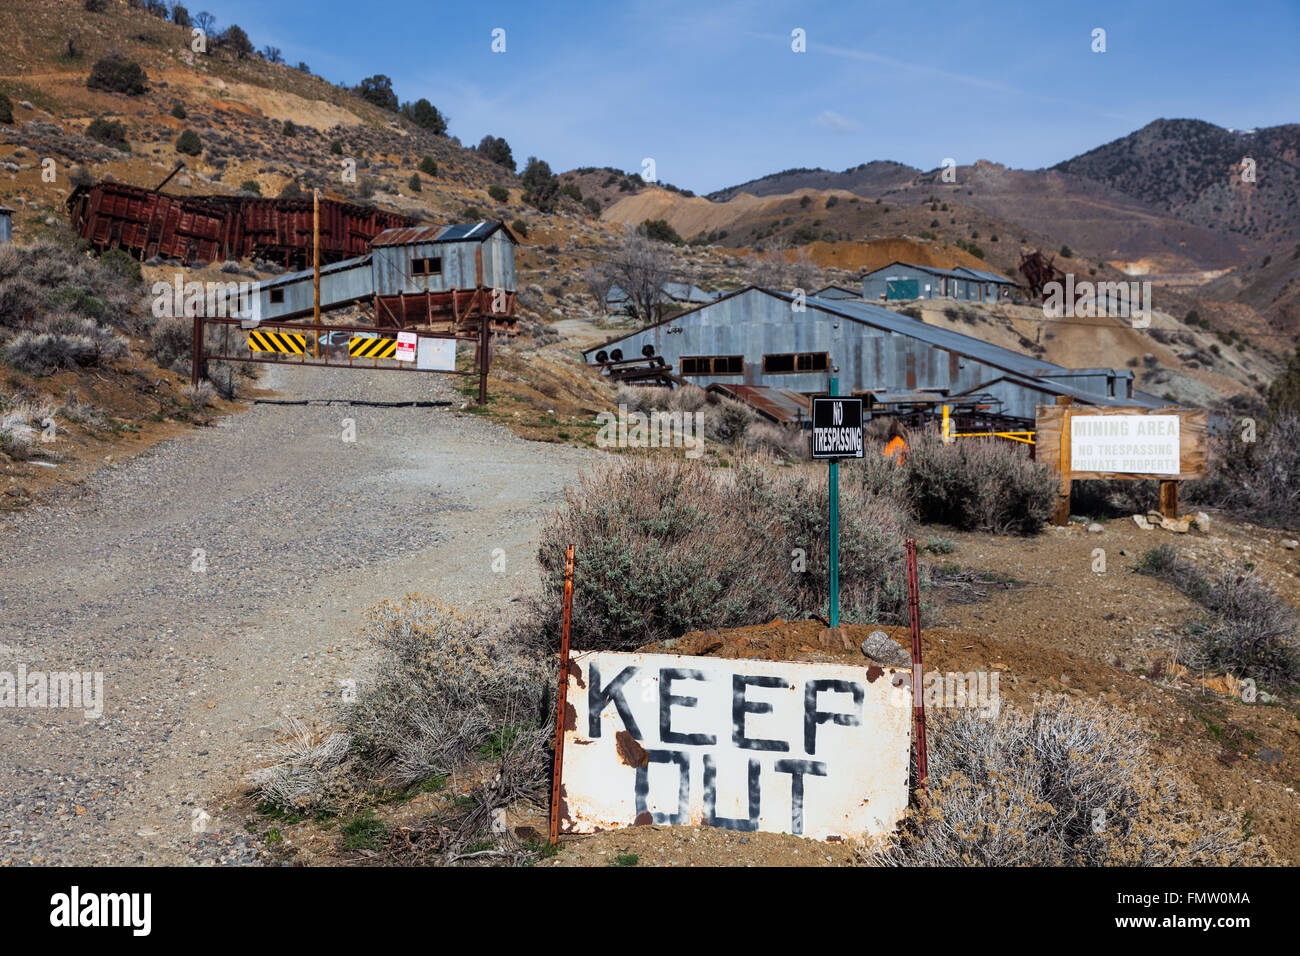 Abandoned silver mine in the community of Silver City, Nevada - Stock Image